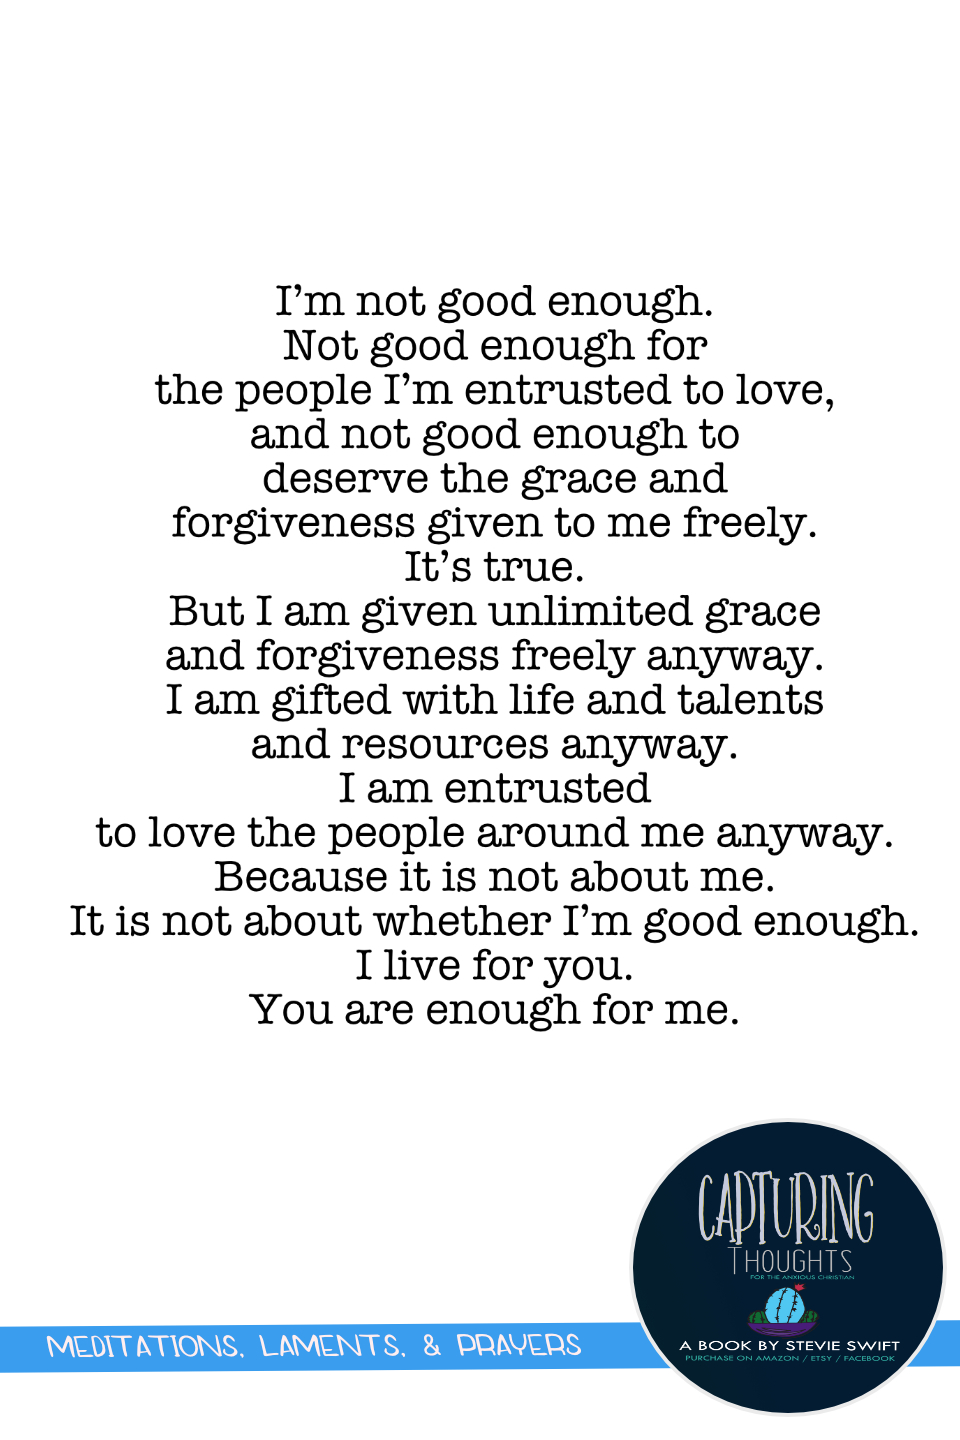 i'm not good enough. not good enough for the people i'm entrusted to love and not good enough to deserve the grace and forgiveness given to me freely. it's true. but i am given unlimited grace and forgiveness freely anyway.